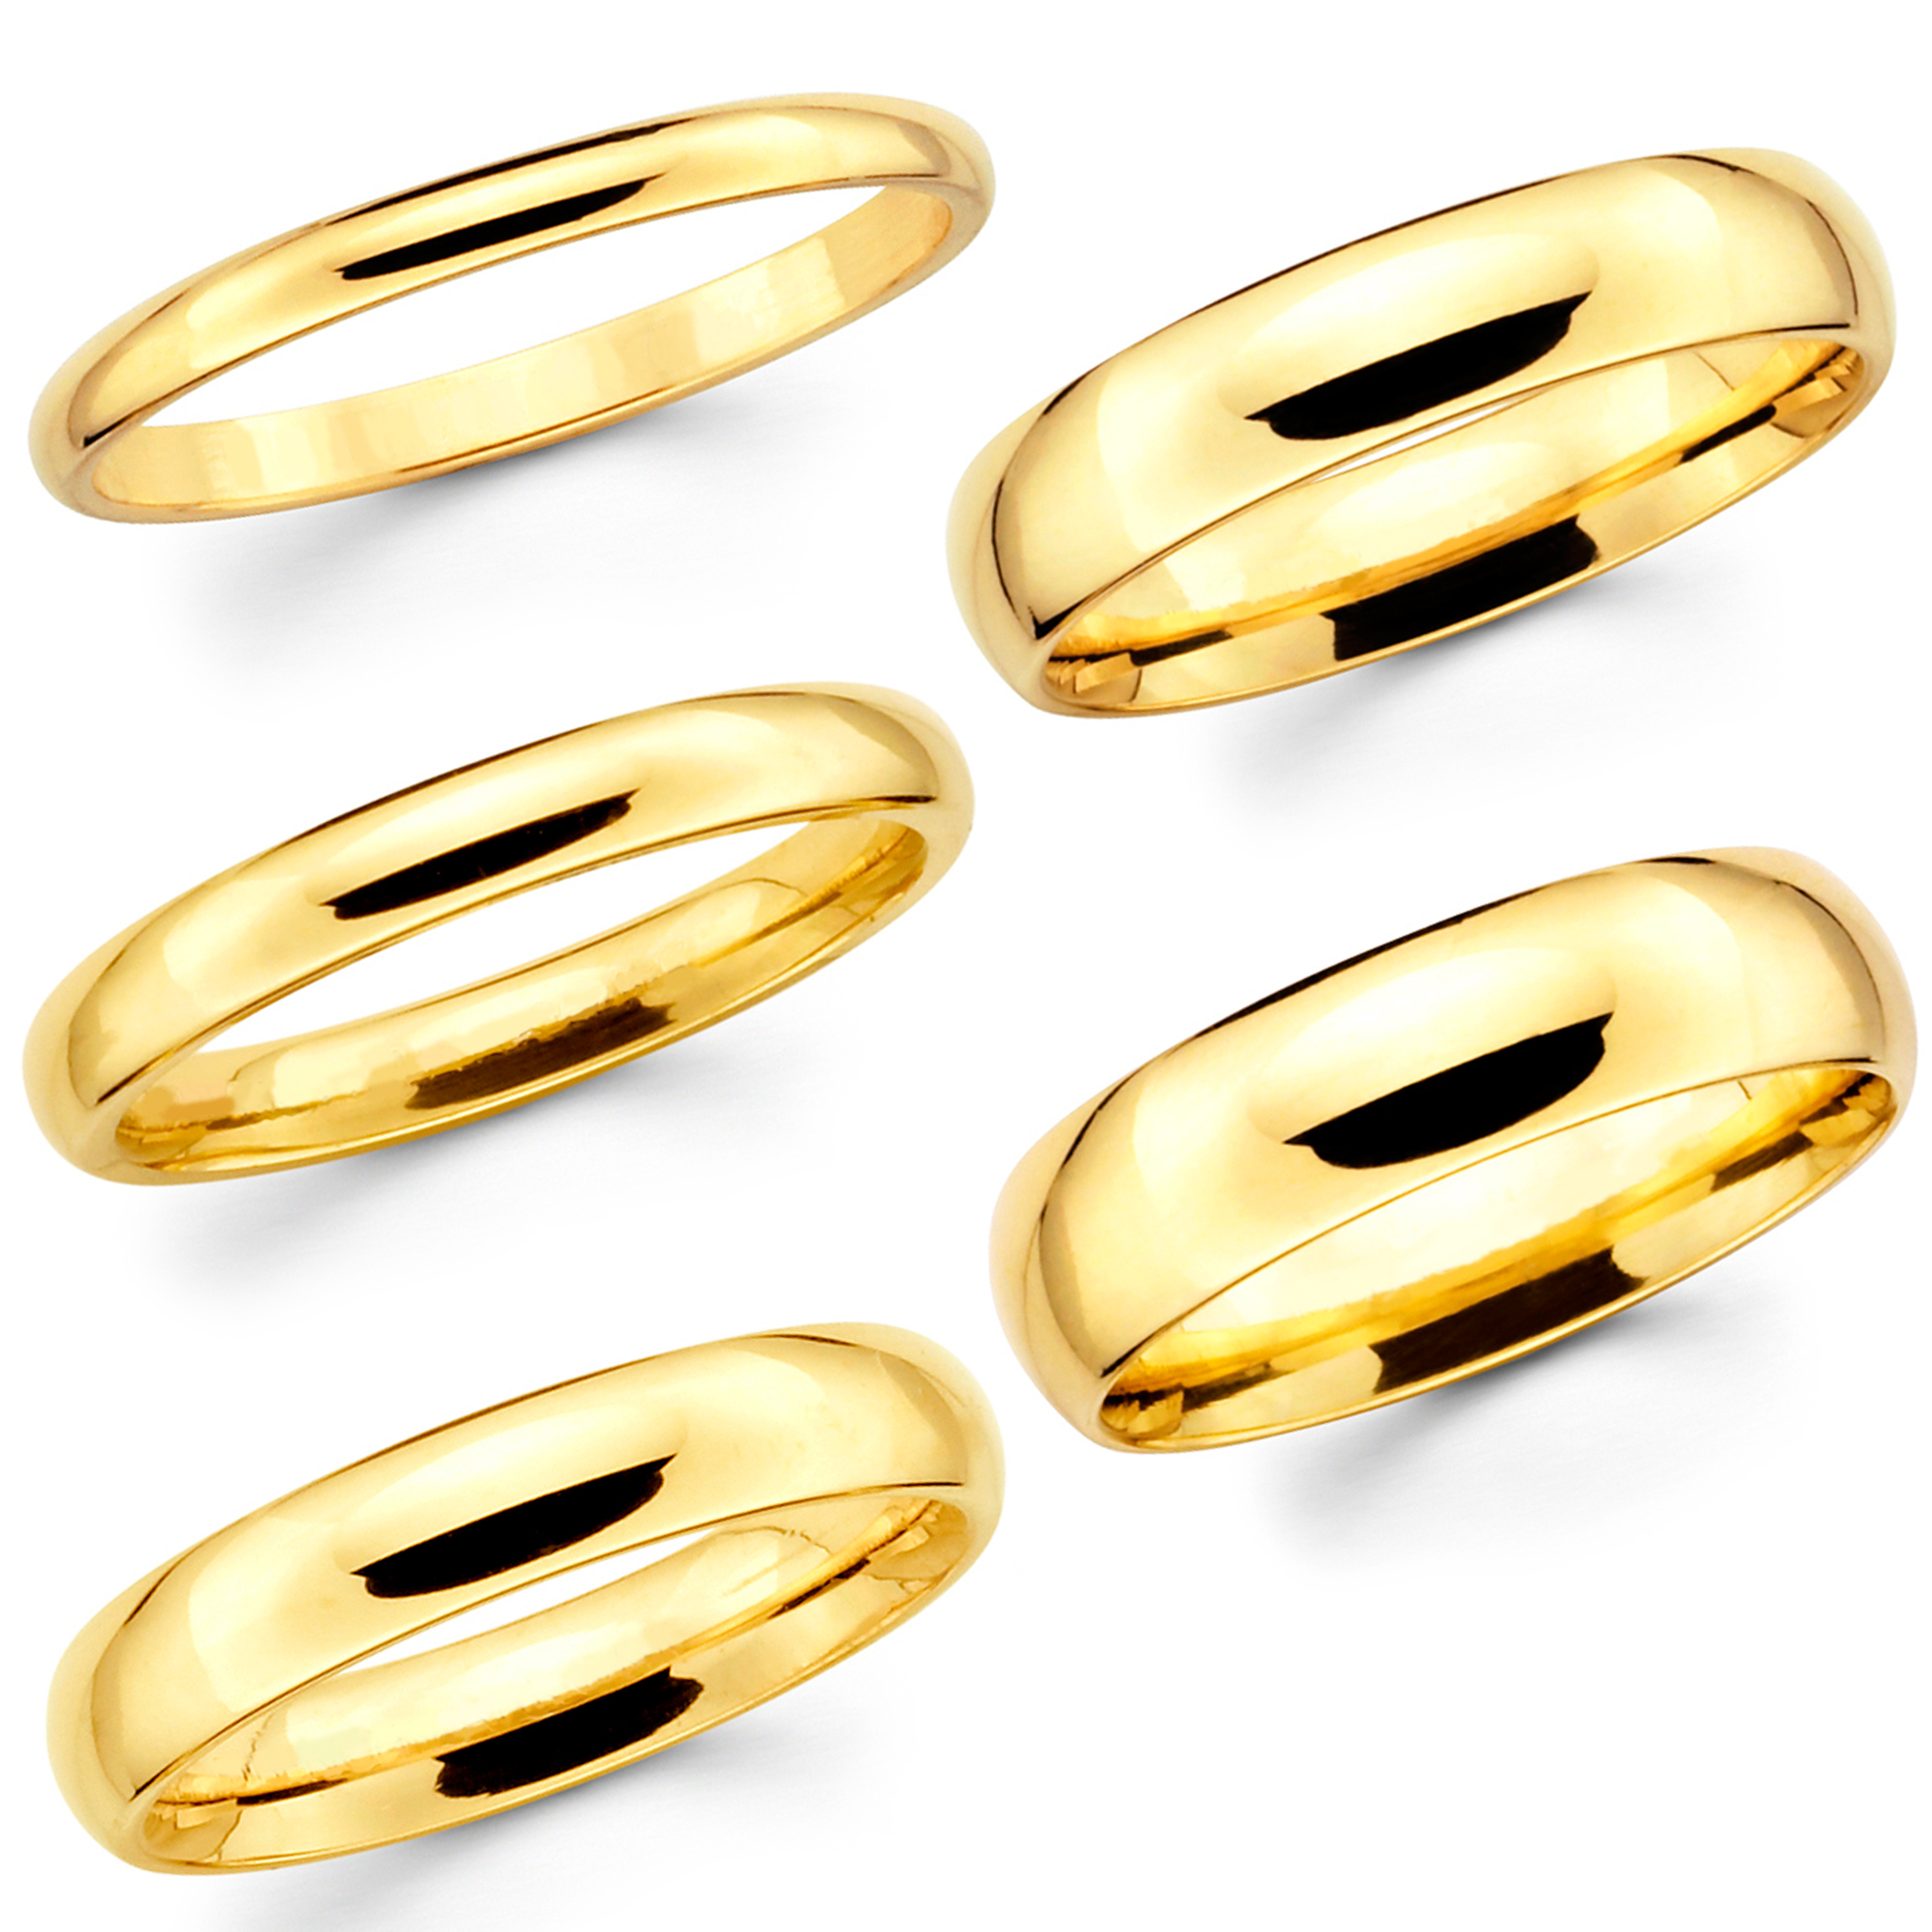 bands topic wedding or band ring your gold please on hands small yellow show closed